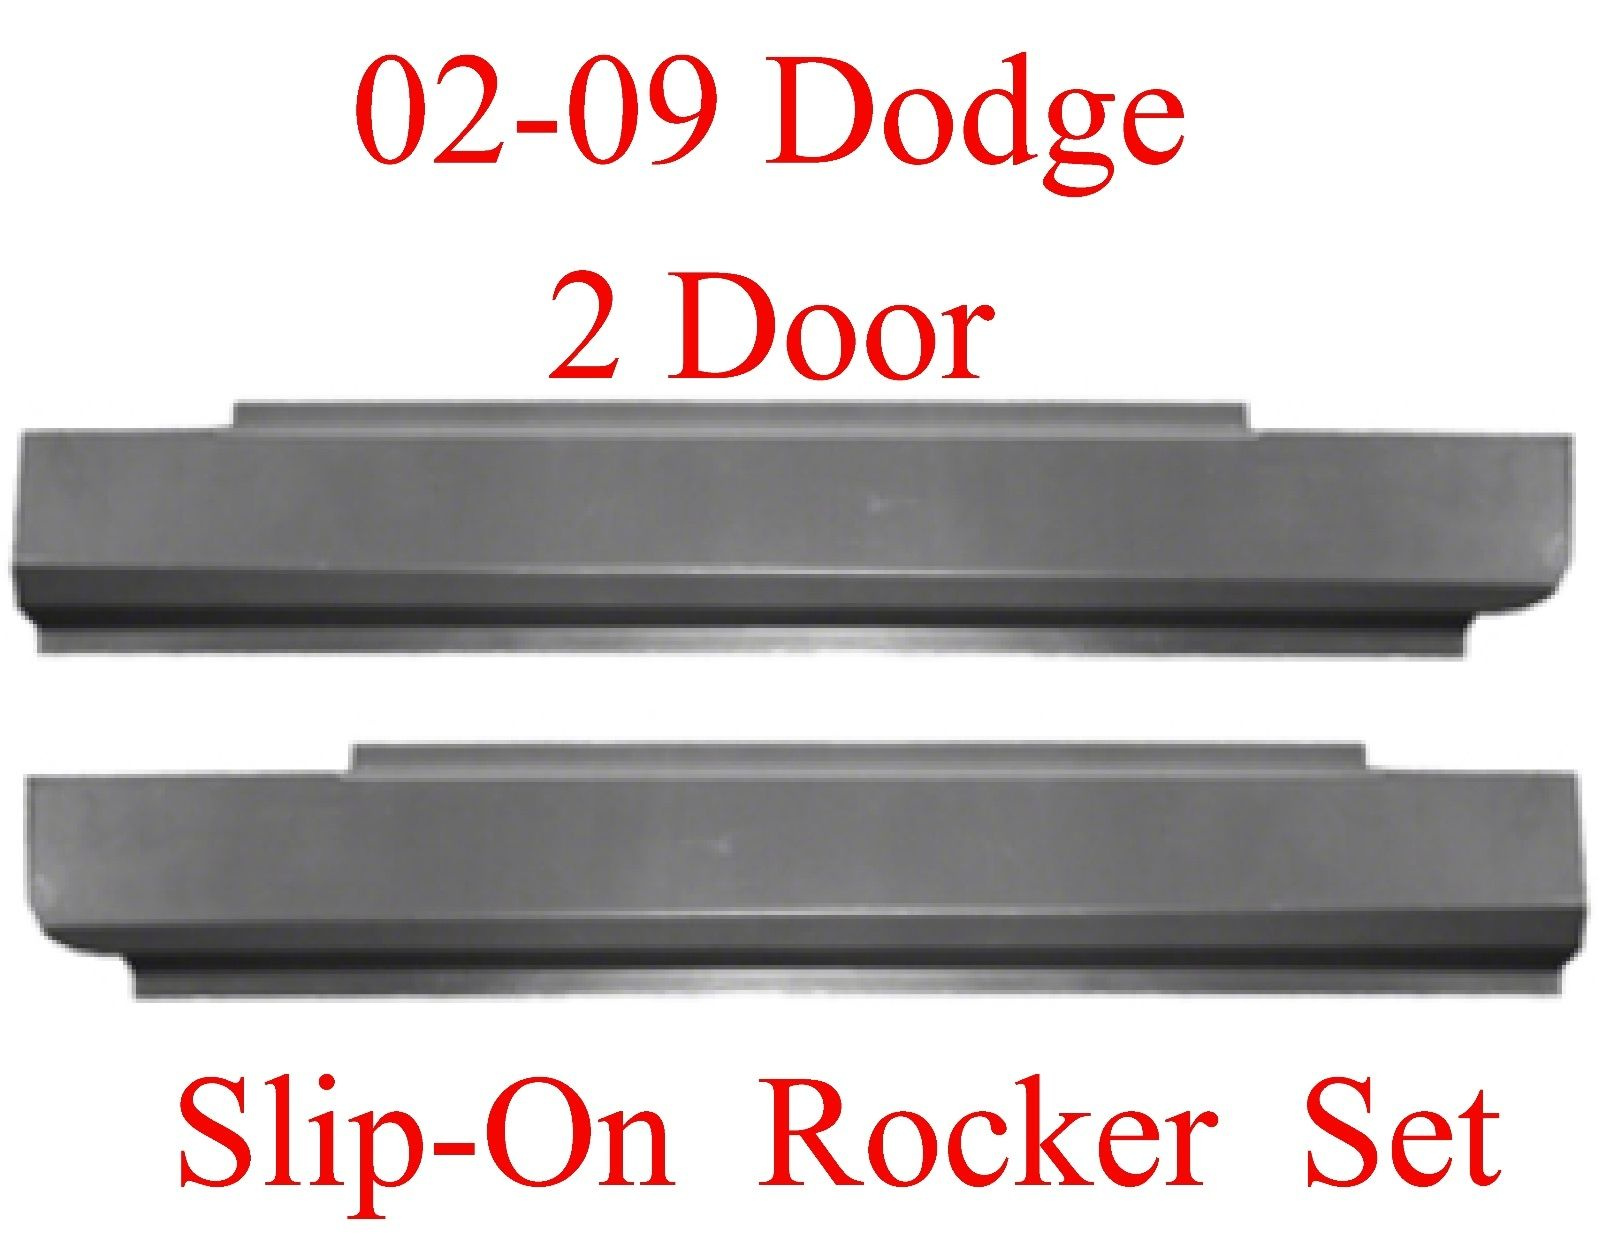 02-09 Dodge Slip-On Rocker Set 2 Door